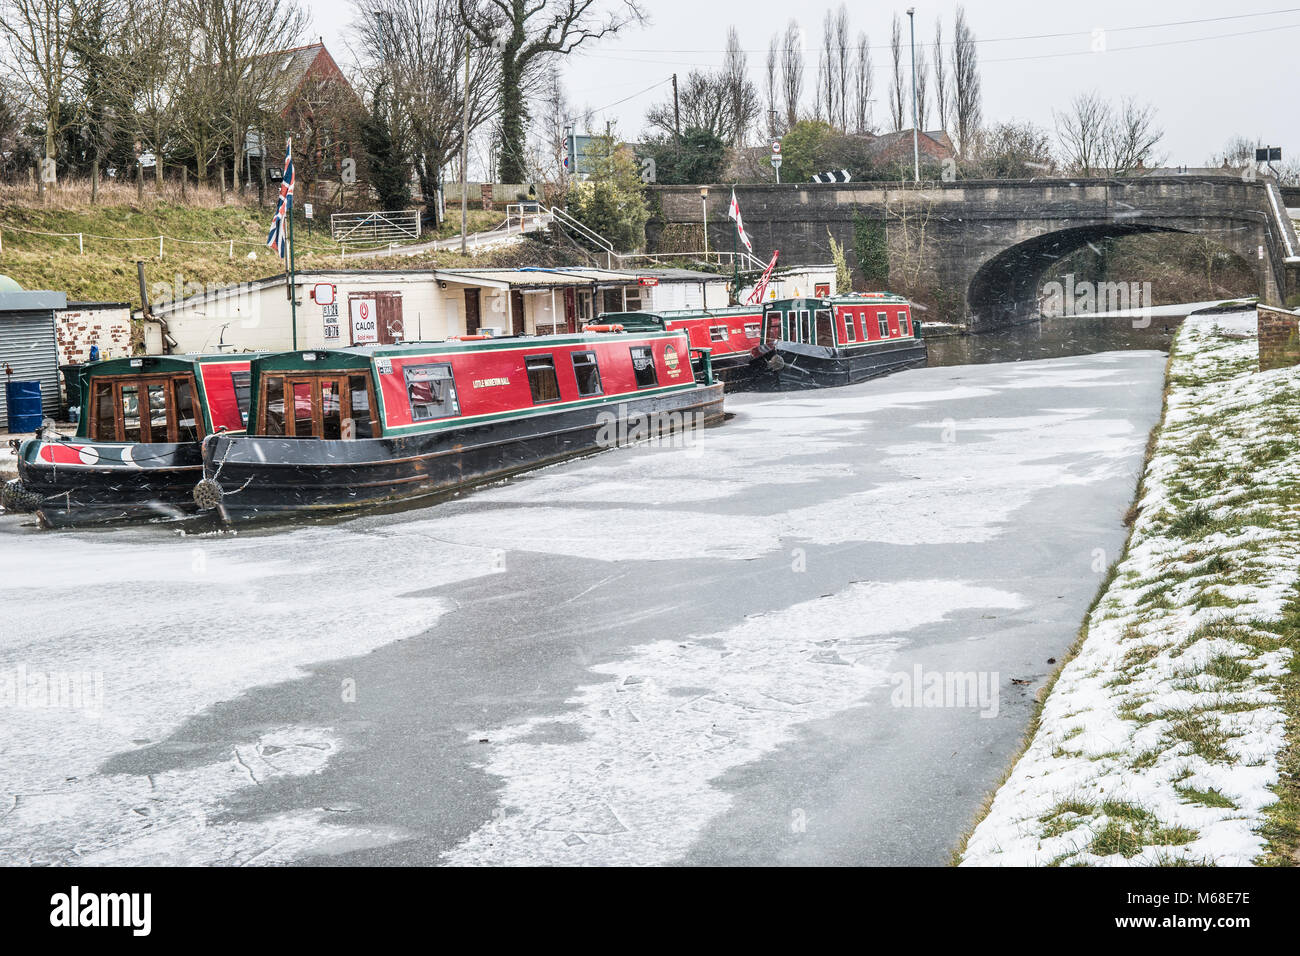 Canal boats wintering  at Preston Brook, Cheshire, UK. - Stock Image